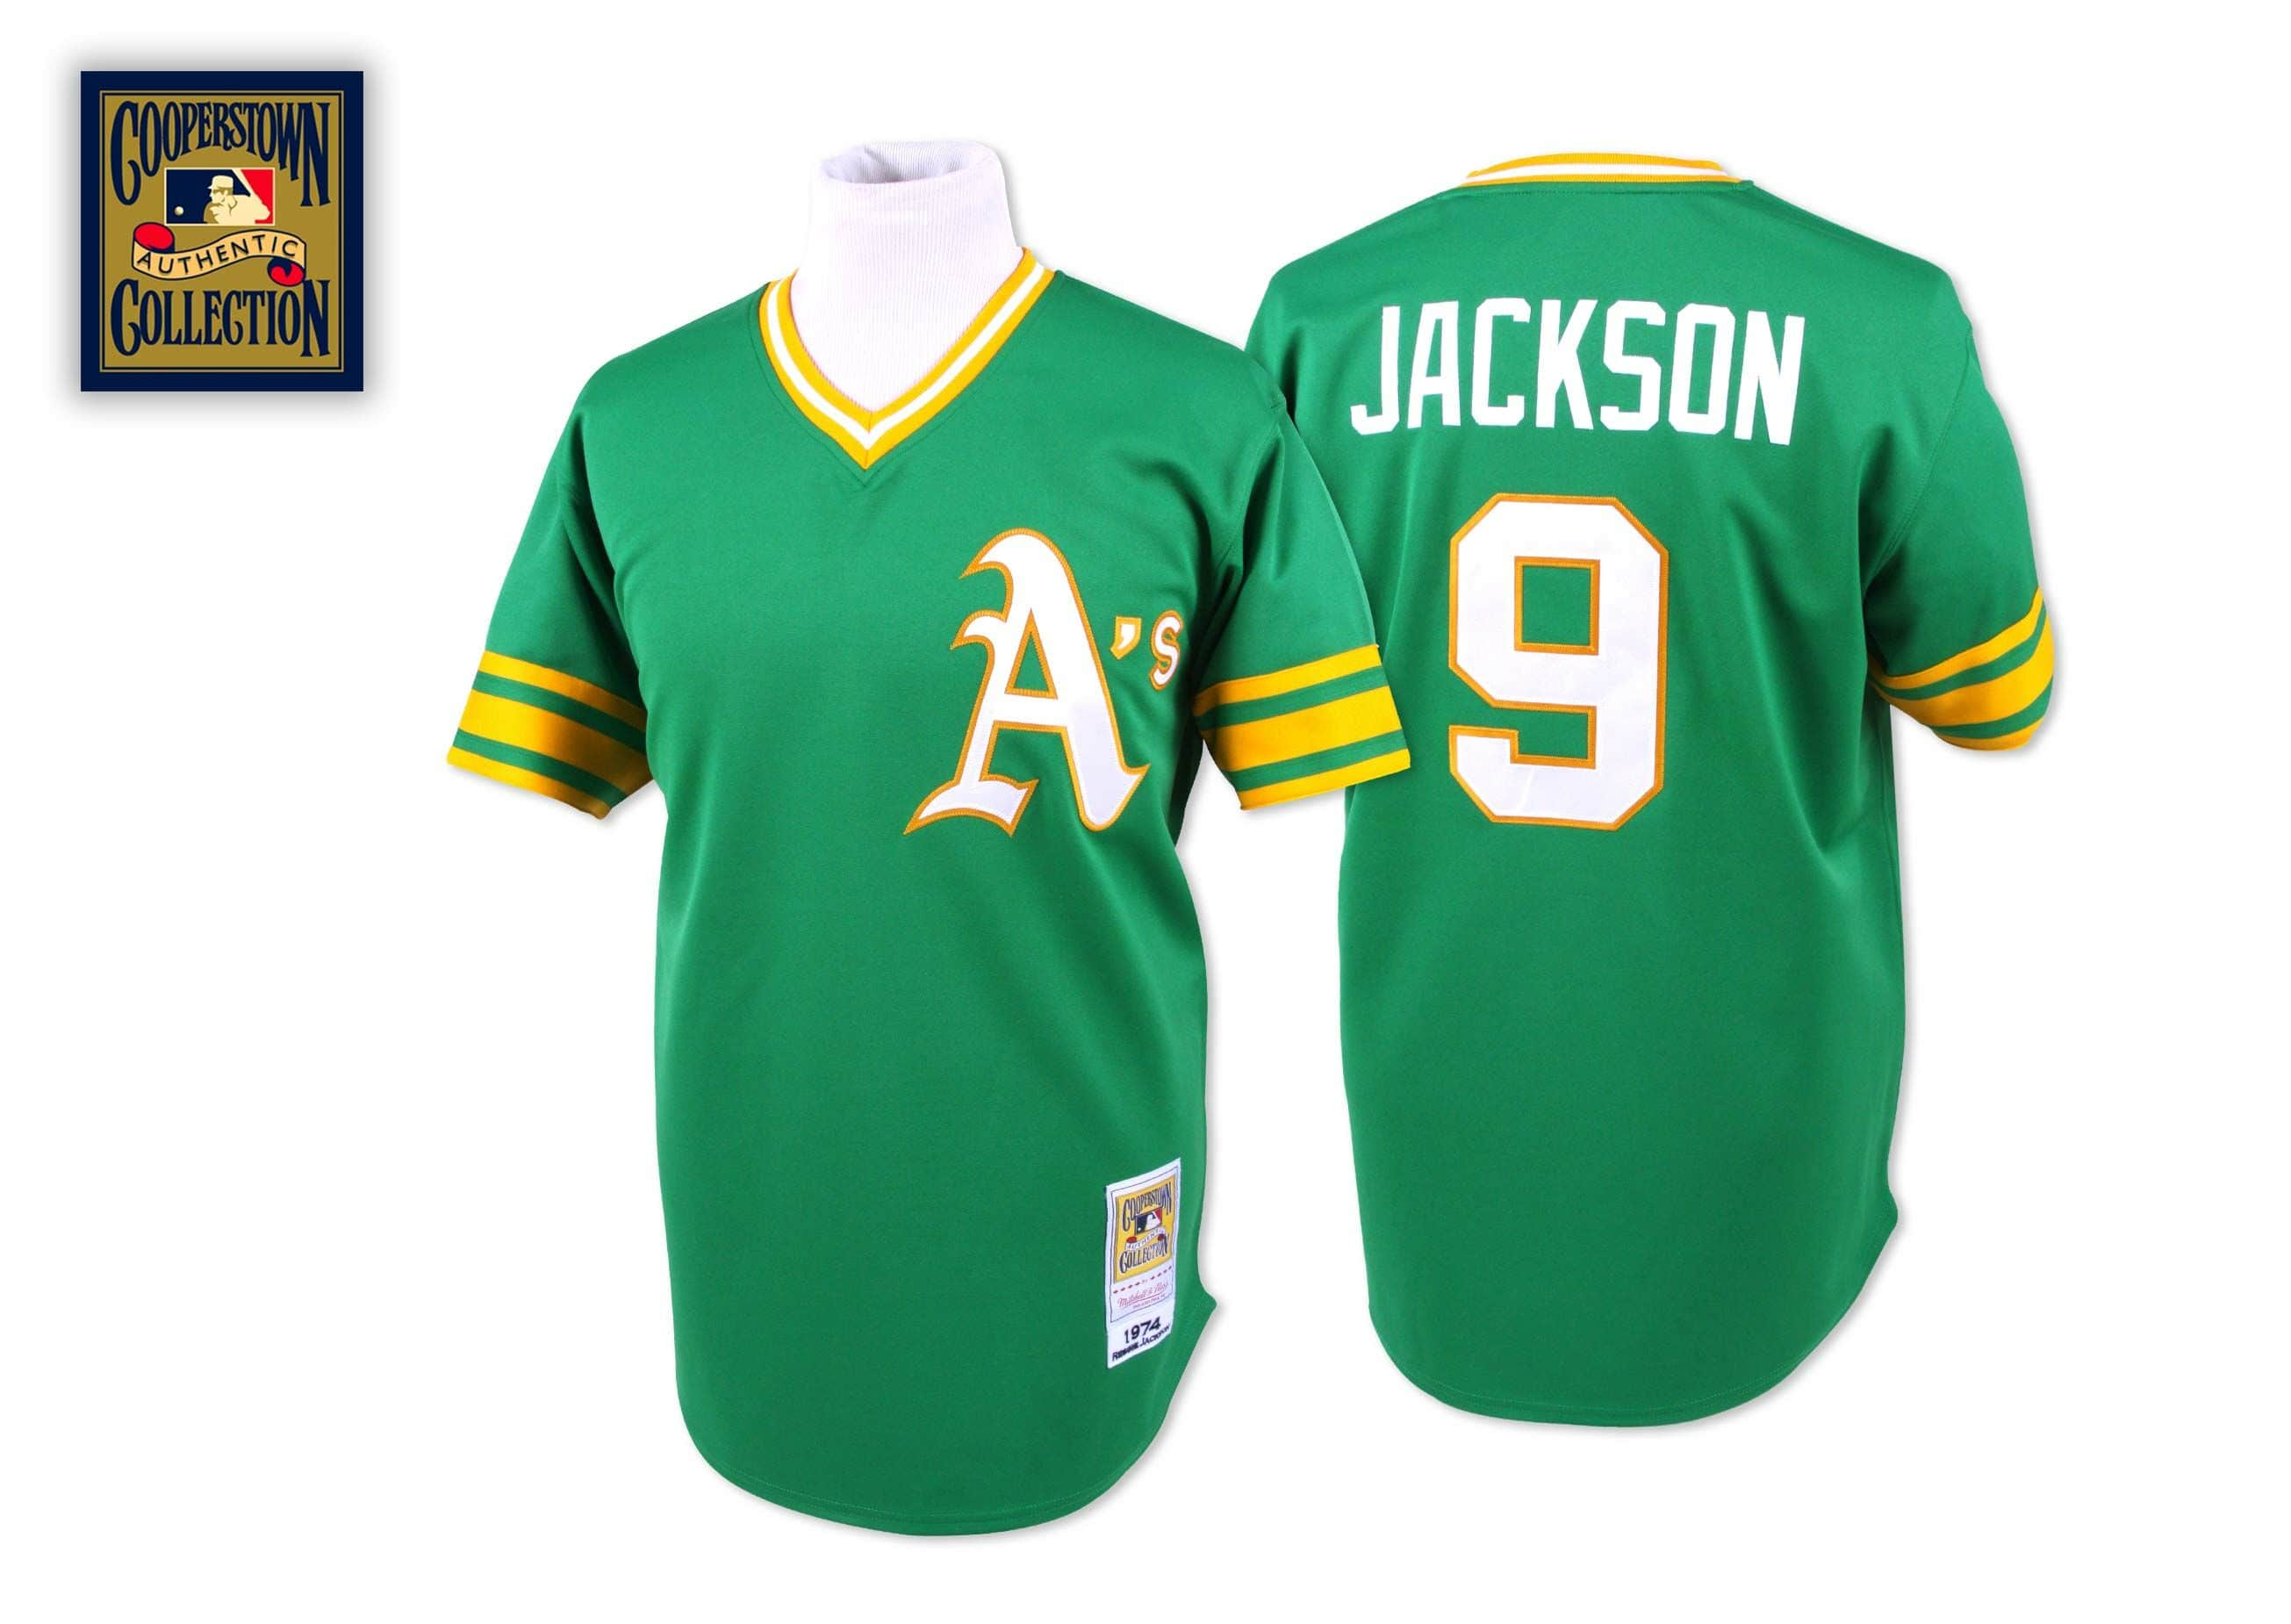 Reggie Jackson 1974 Authentic Jersey Oakland Athletic's